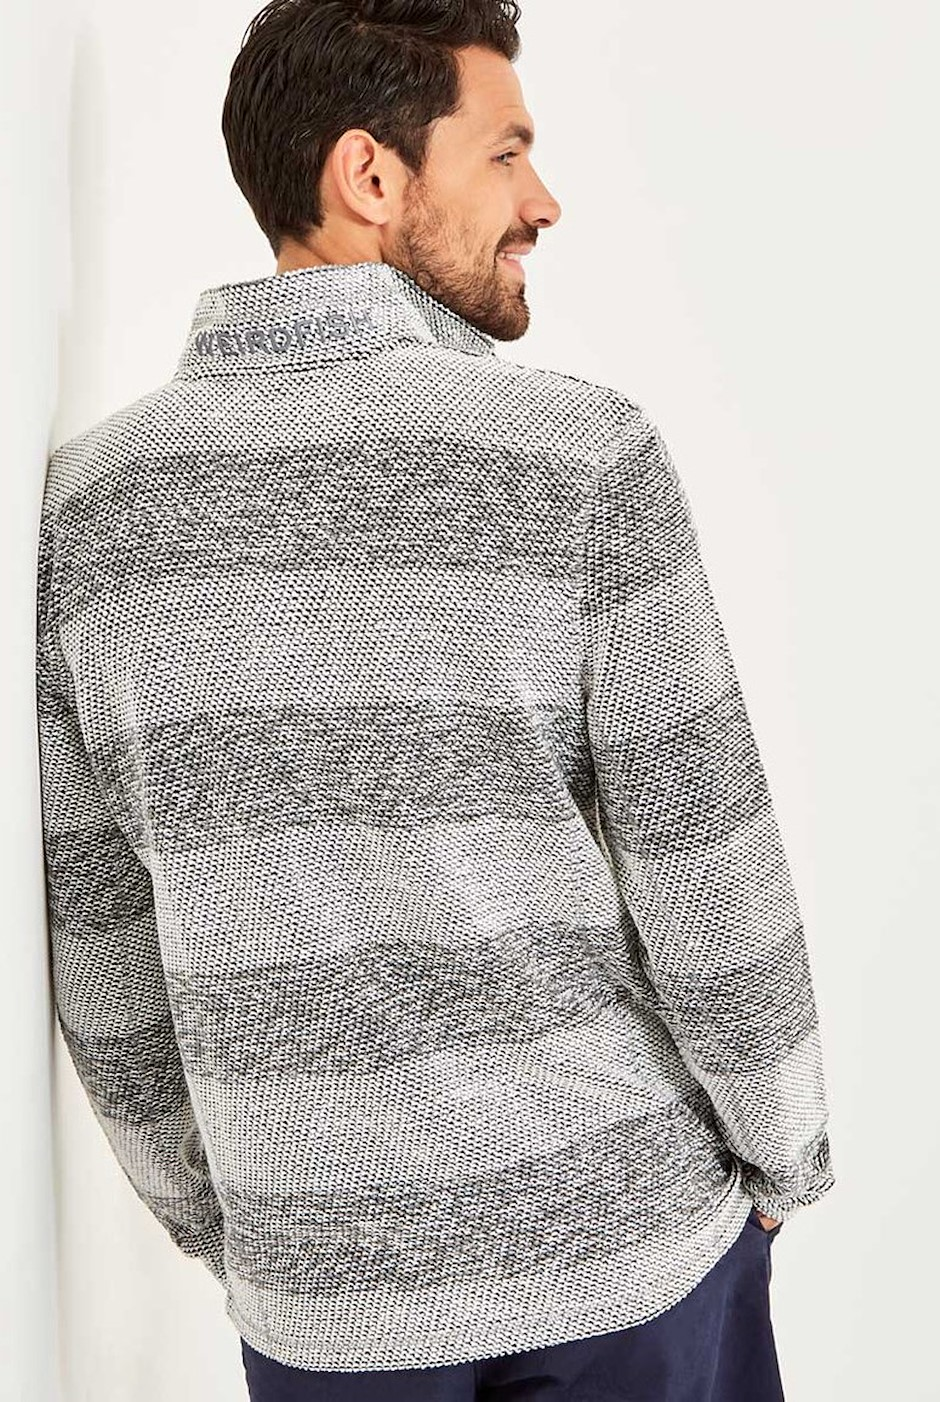 Hogan 1/4 Zip Striped Active Macaroni Ecru